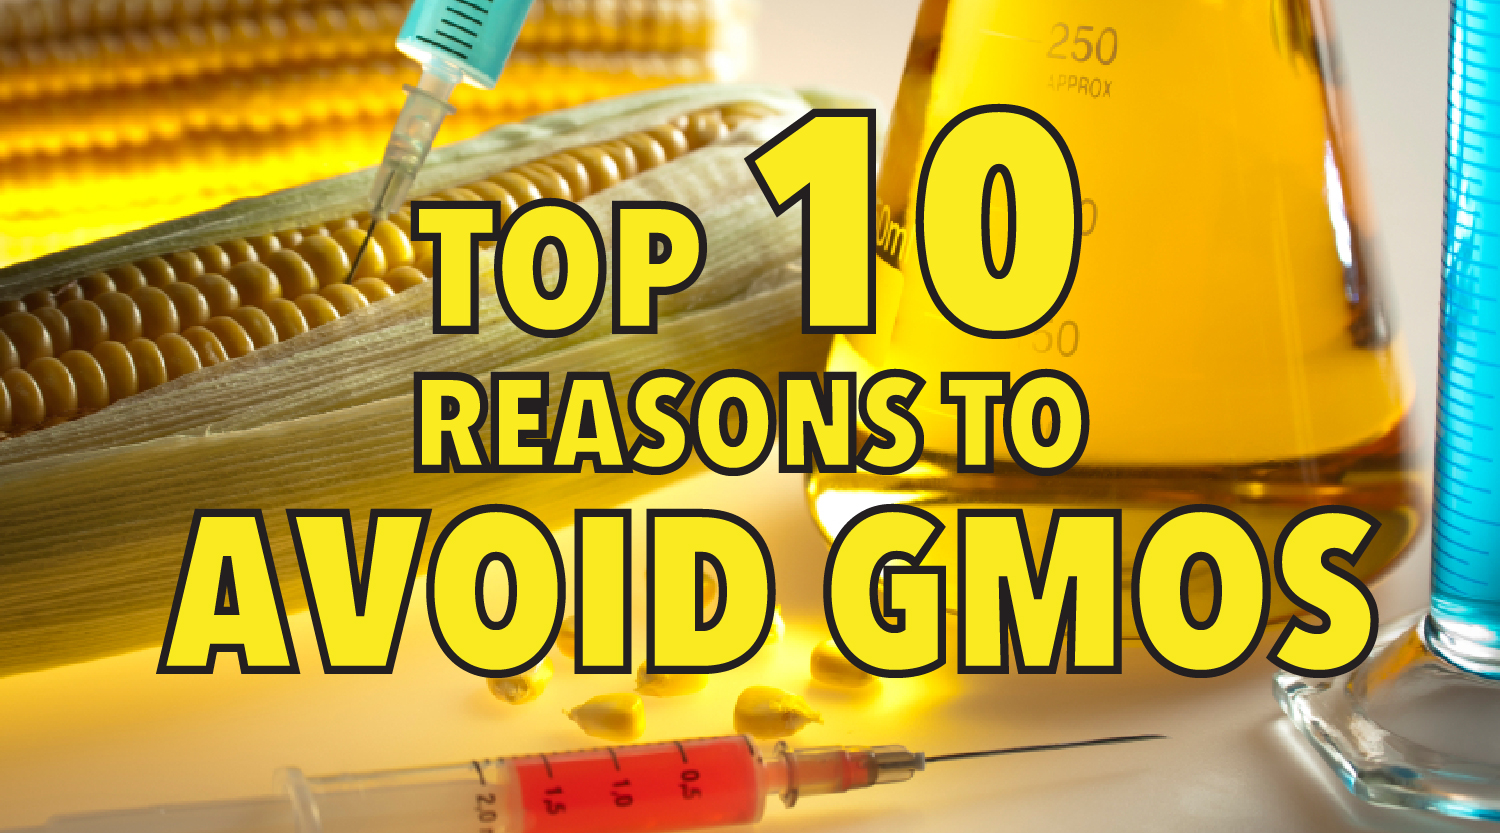 Top 10 reasons to avoid GMOs